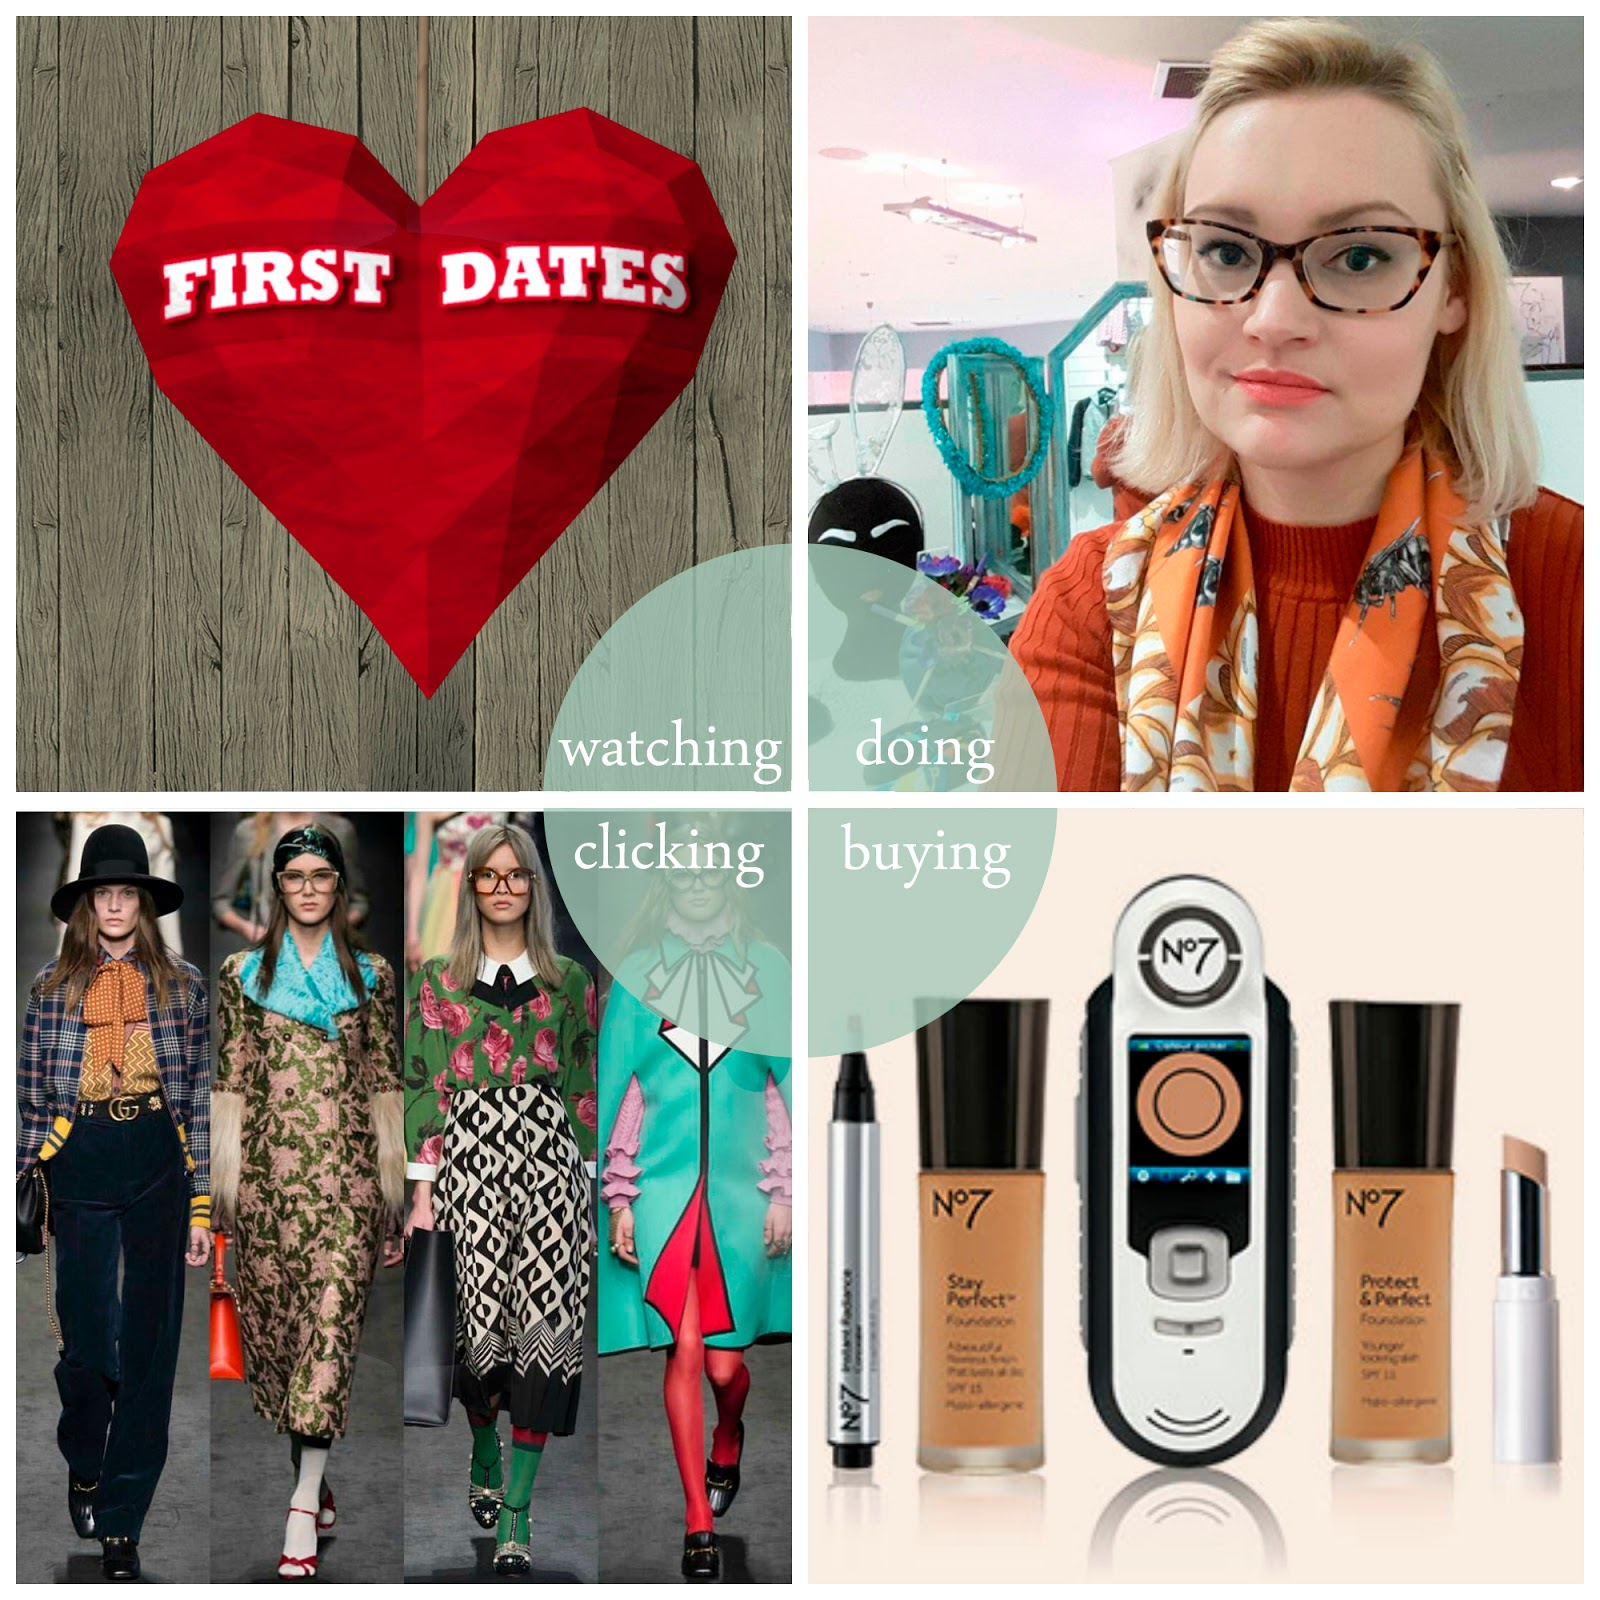 Kimberley's February Round Up, Blogger best bits, Scottish blogger, First Dates, Scottish Design Exchange, No 7 Match Made foundation, GucciGucci